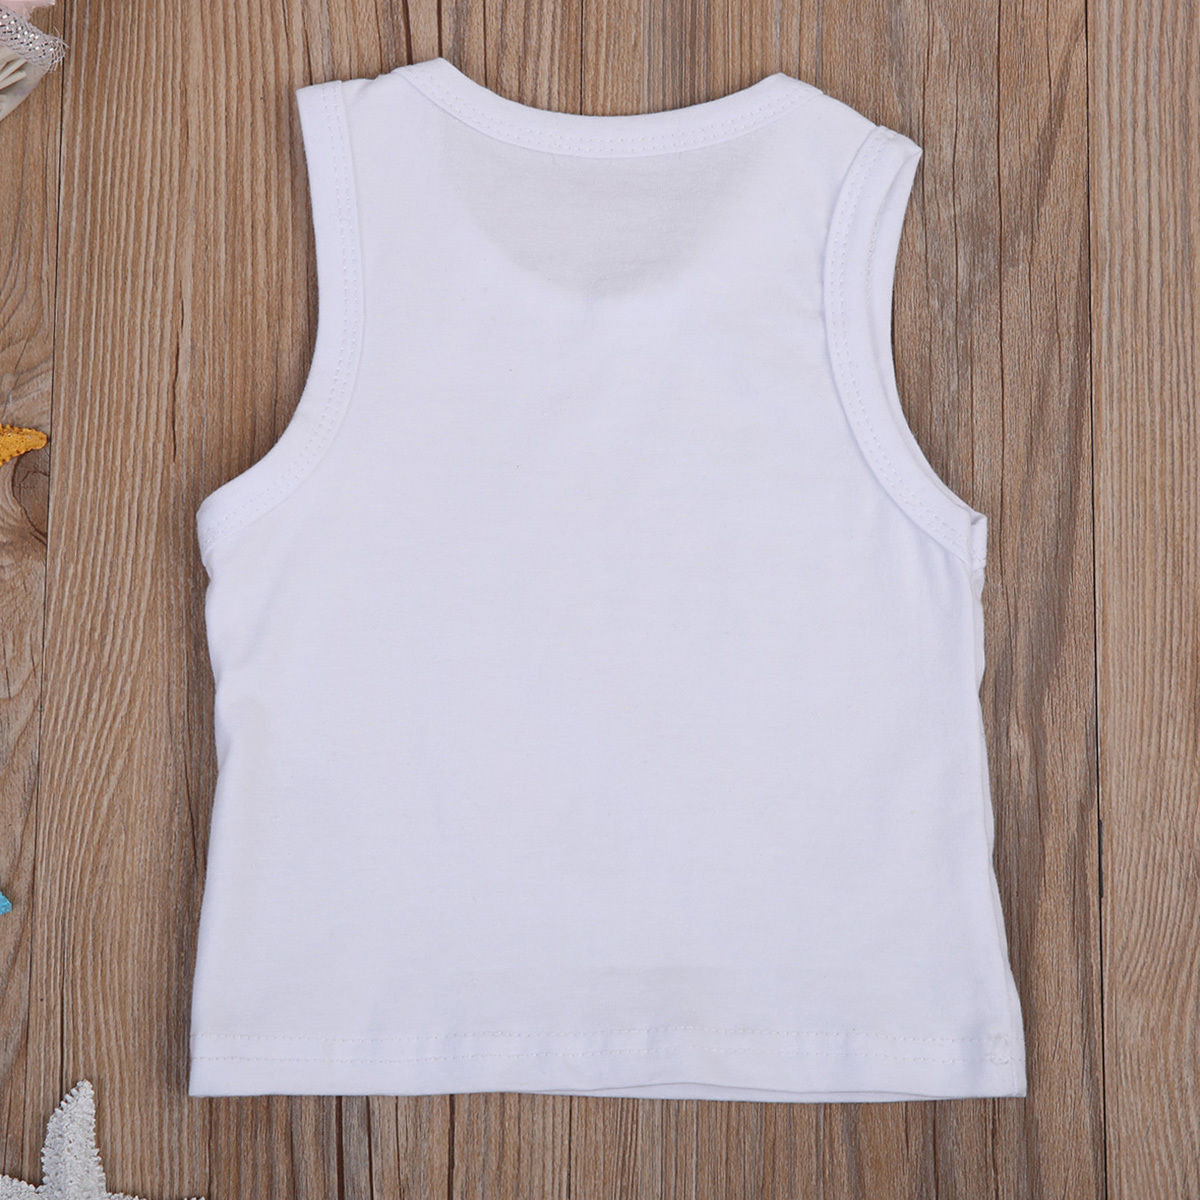 Baby-Boys-T-Shirts-Vest-Cotton-outfits-Clothes-0-24M-Newborn-Infant-Baby-Boy-Clothing-Sleeveless-Tee-Top-5